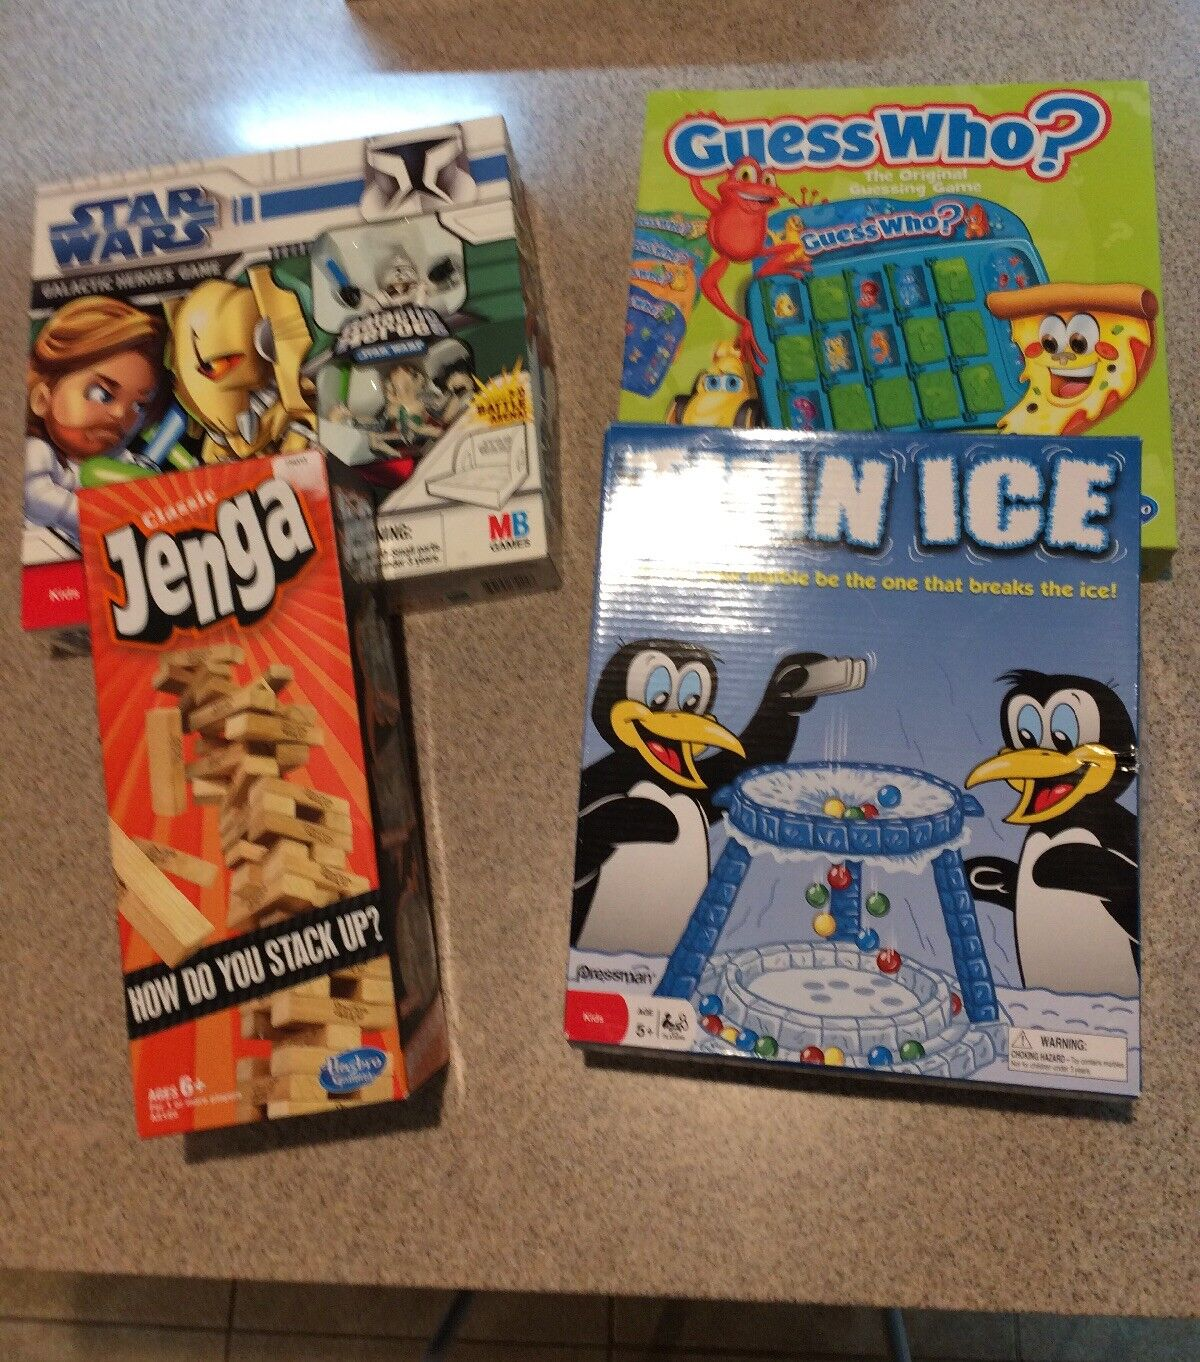 Star Wars Galactic Heroes, Thin Ice, Guess Who, Jenga For Ages 5+